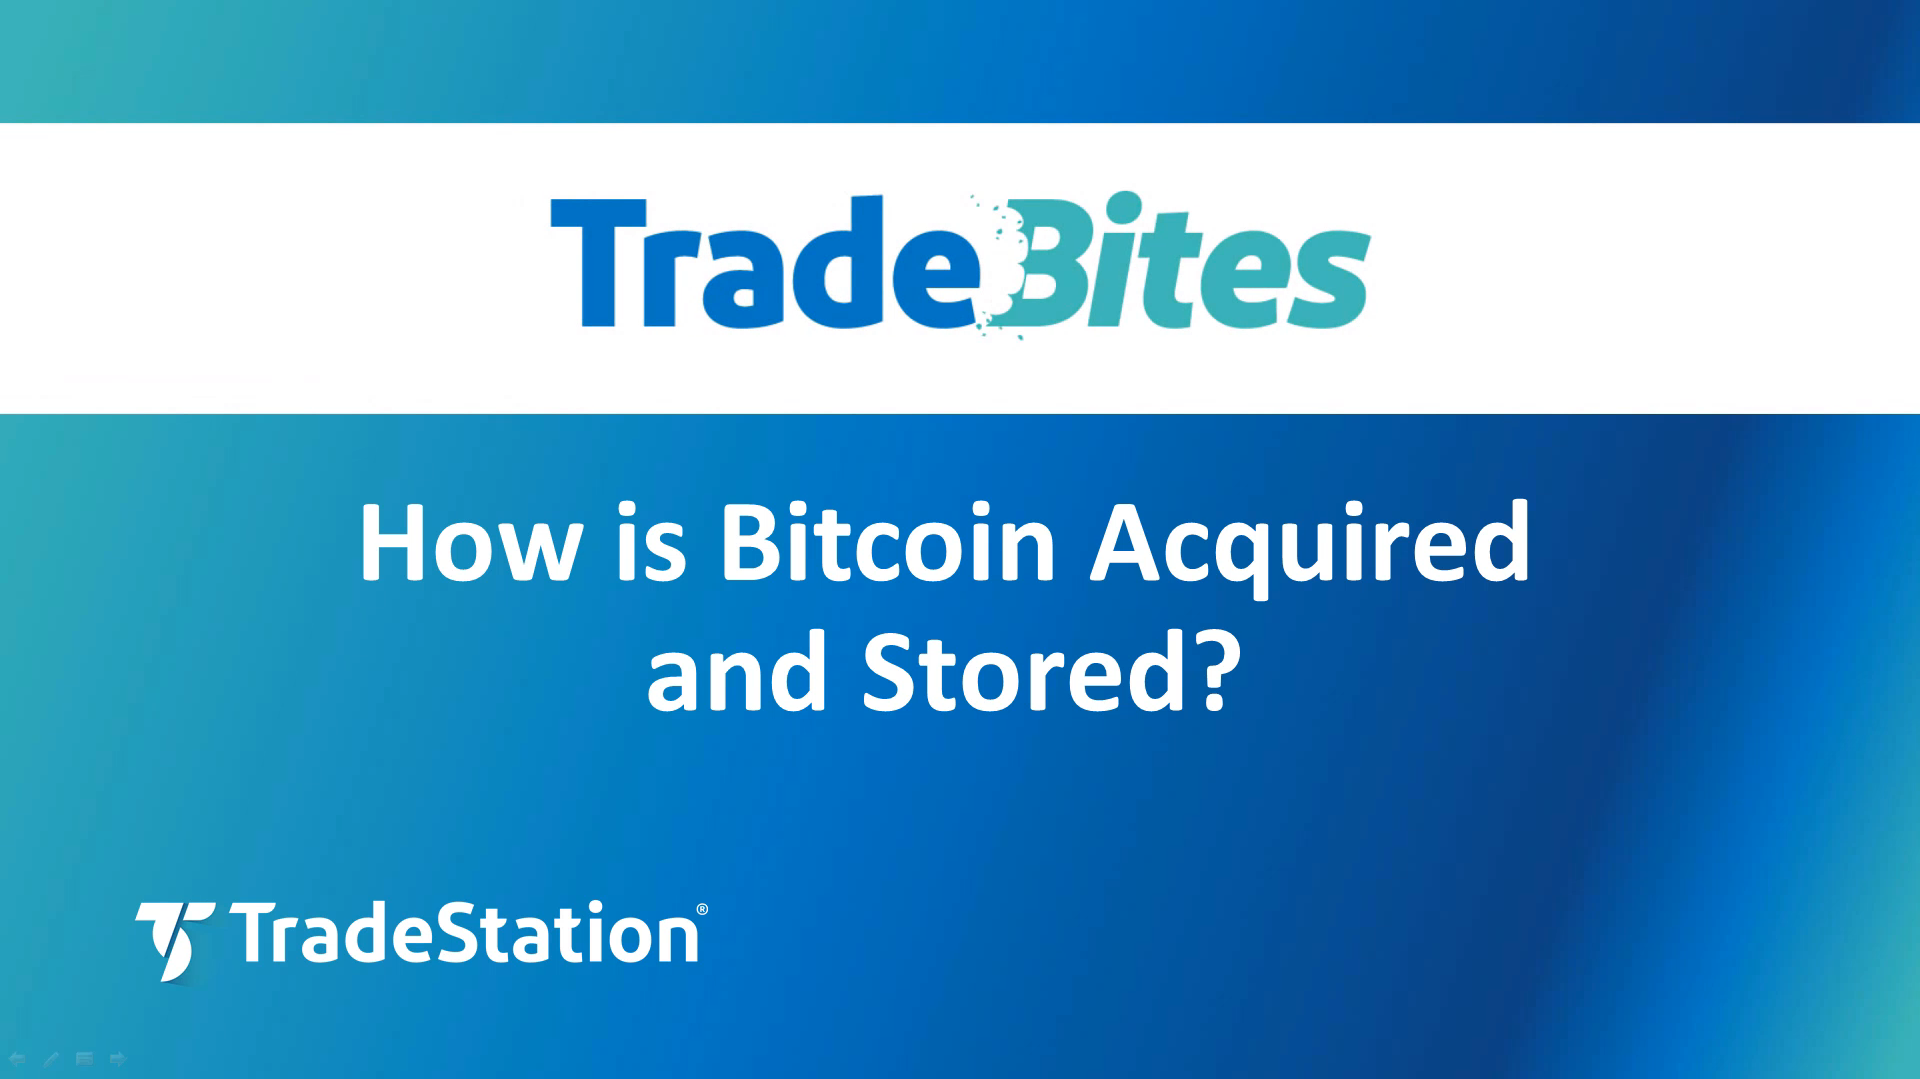 How is Bitcoin Acquired and Stored?